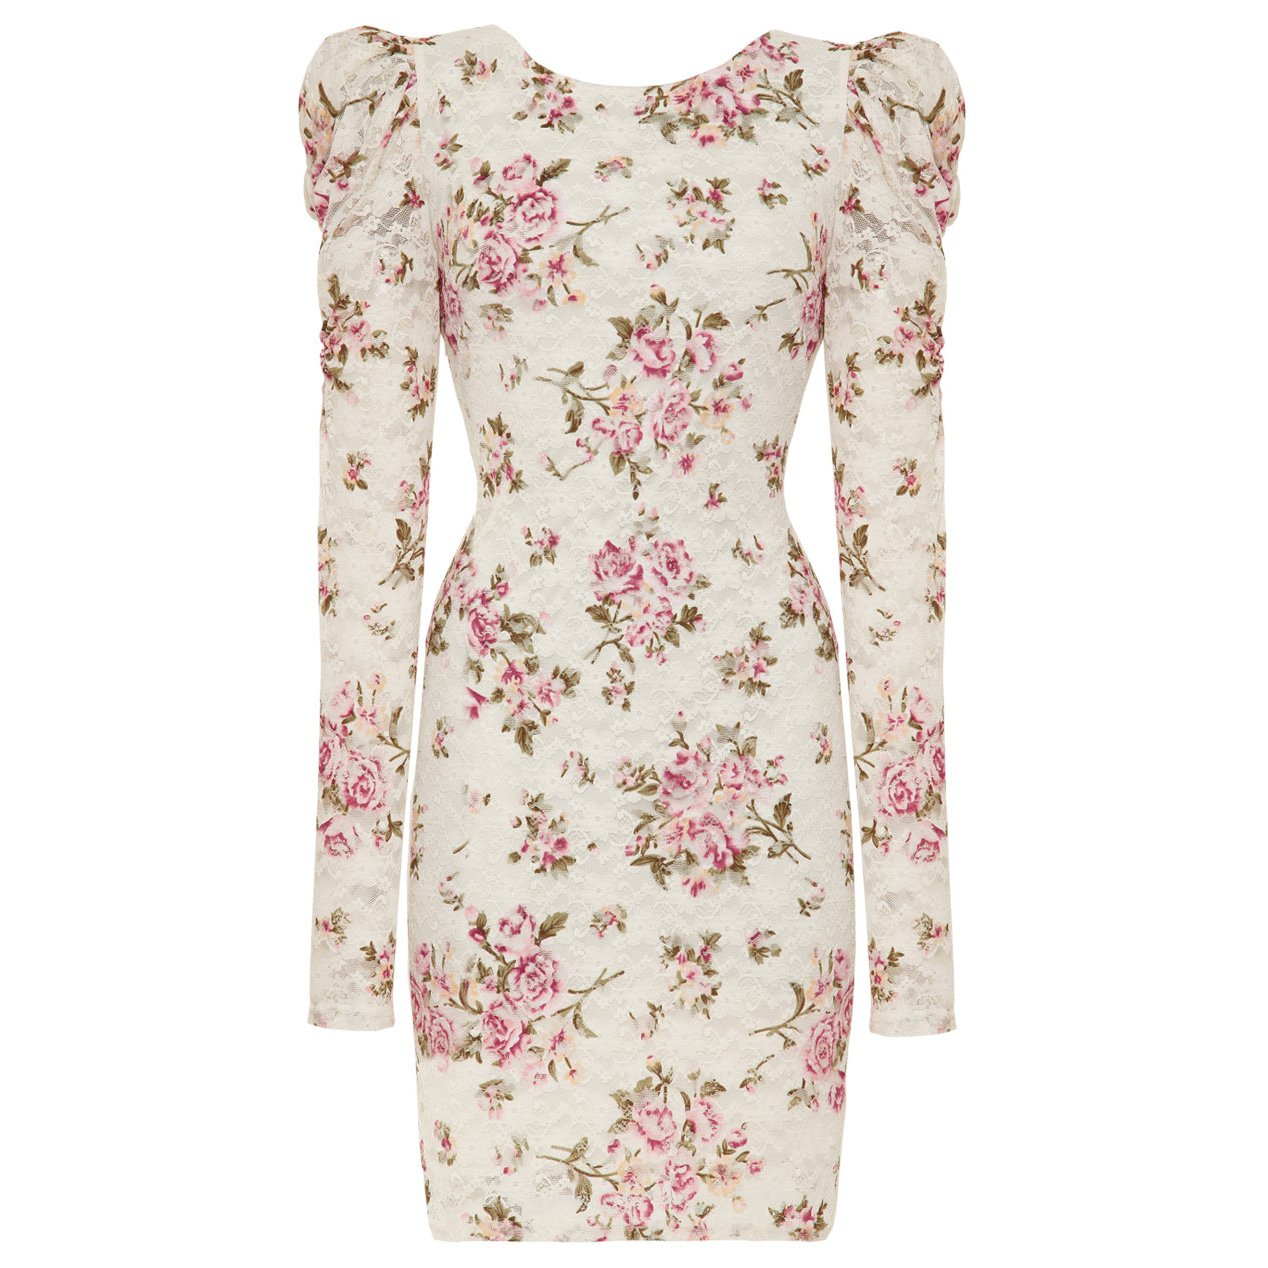 WOMENS CREAM VINTAGE FLORAL PRINT EVENING COCKTAIL BODYCON MINI PARTY PROM DRESS UK 10-12, US 6-8